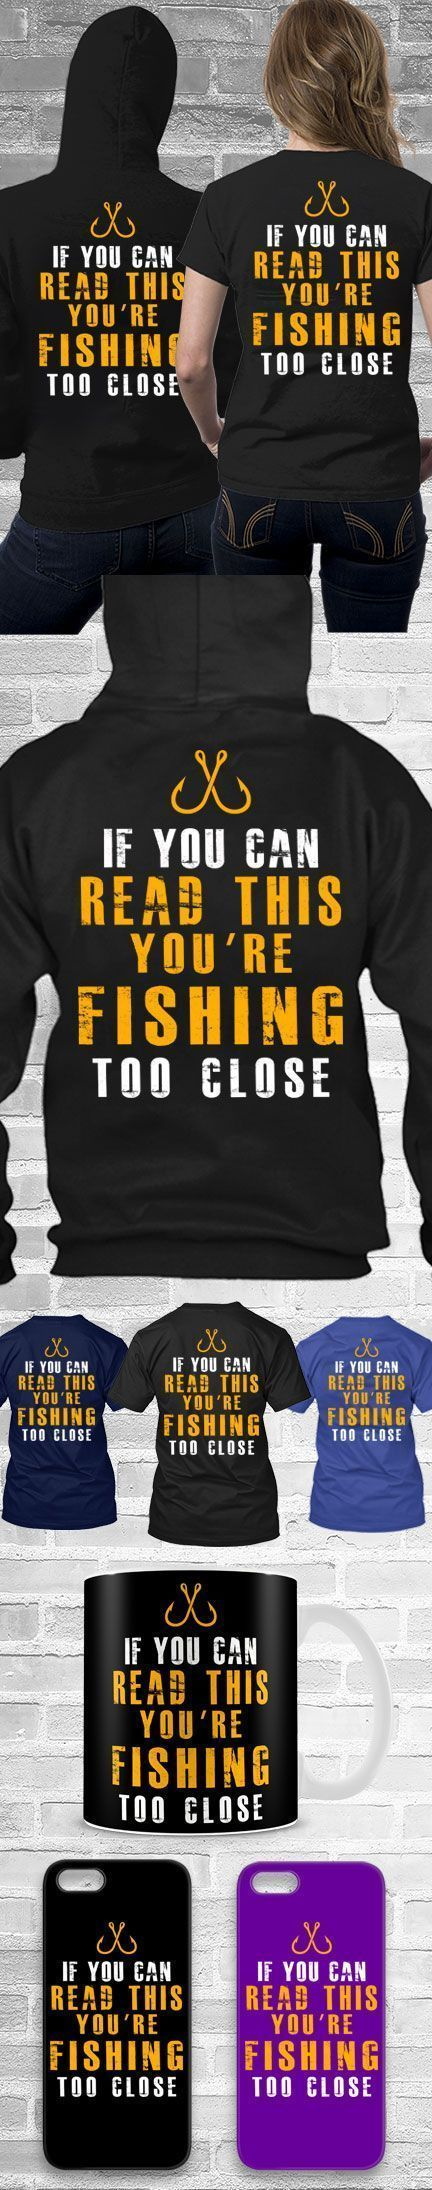 Fishing Too Close Shirts! Click The Image To Buy It Now or Tag Someone You Want To Buy This For.  #fishing #fishingrods